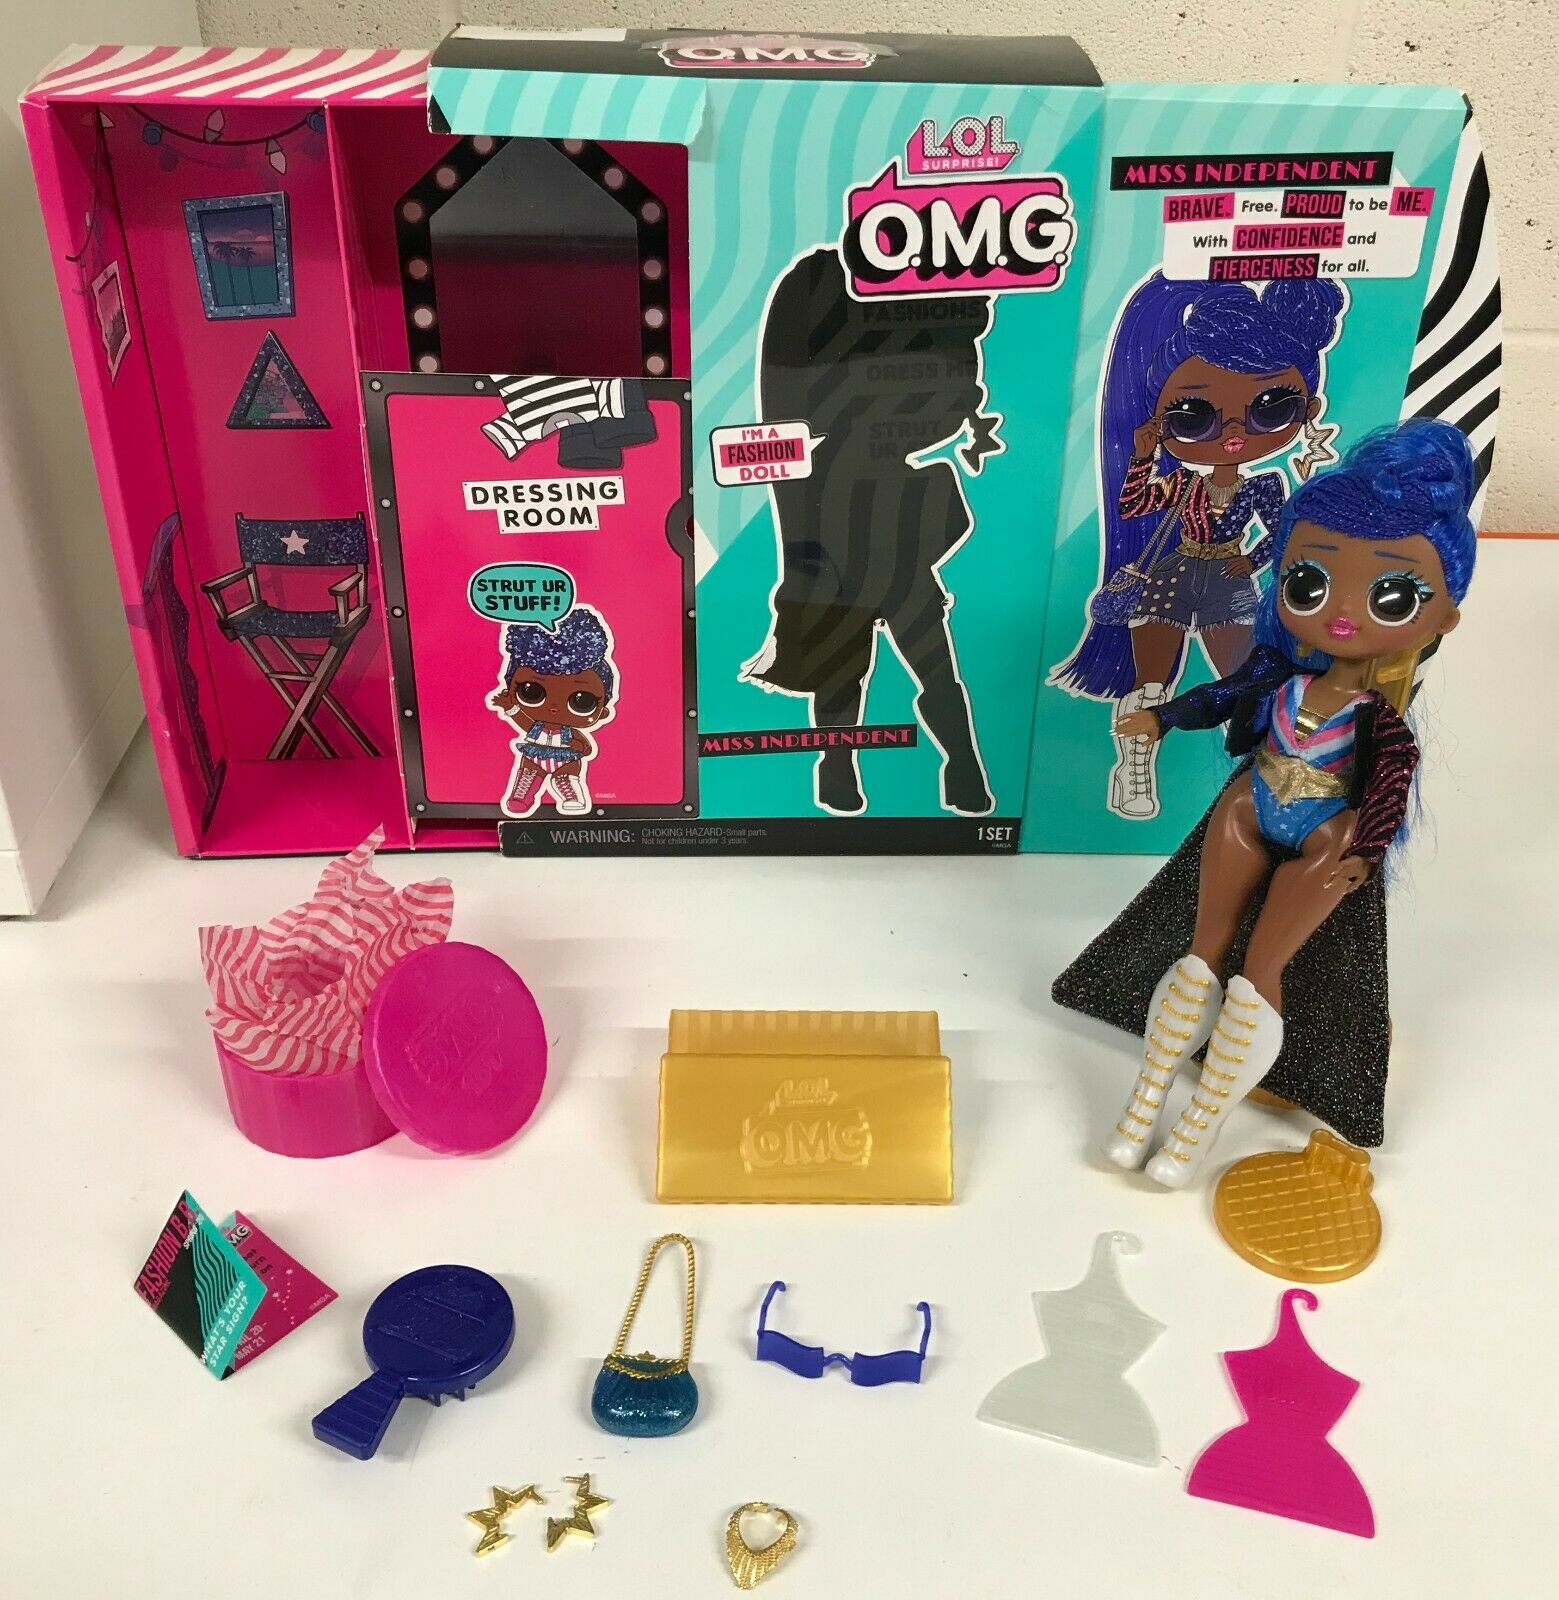 LOL Surprise Fashion Doll OMG Miss Independent Accessories Articulated Posable